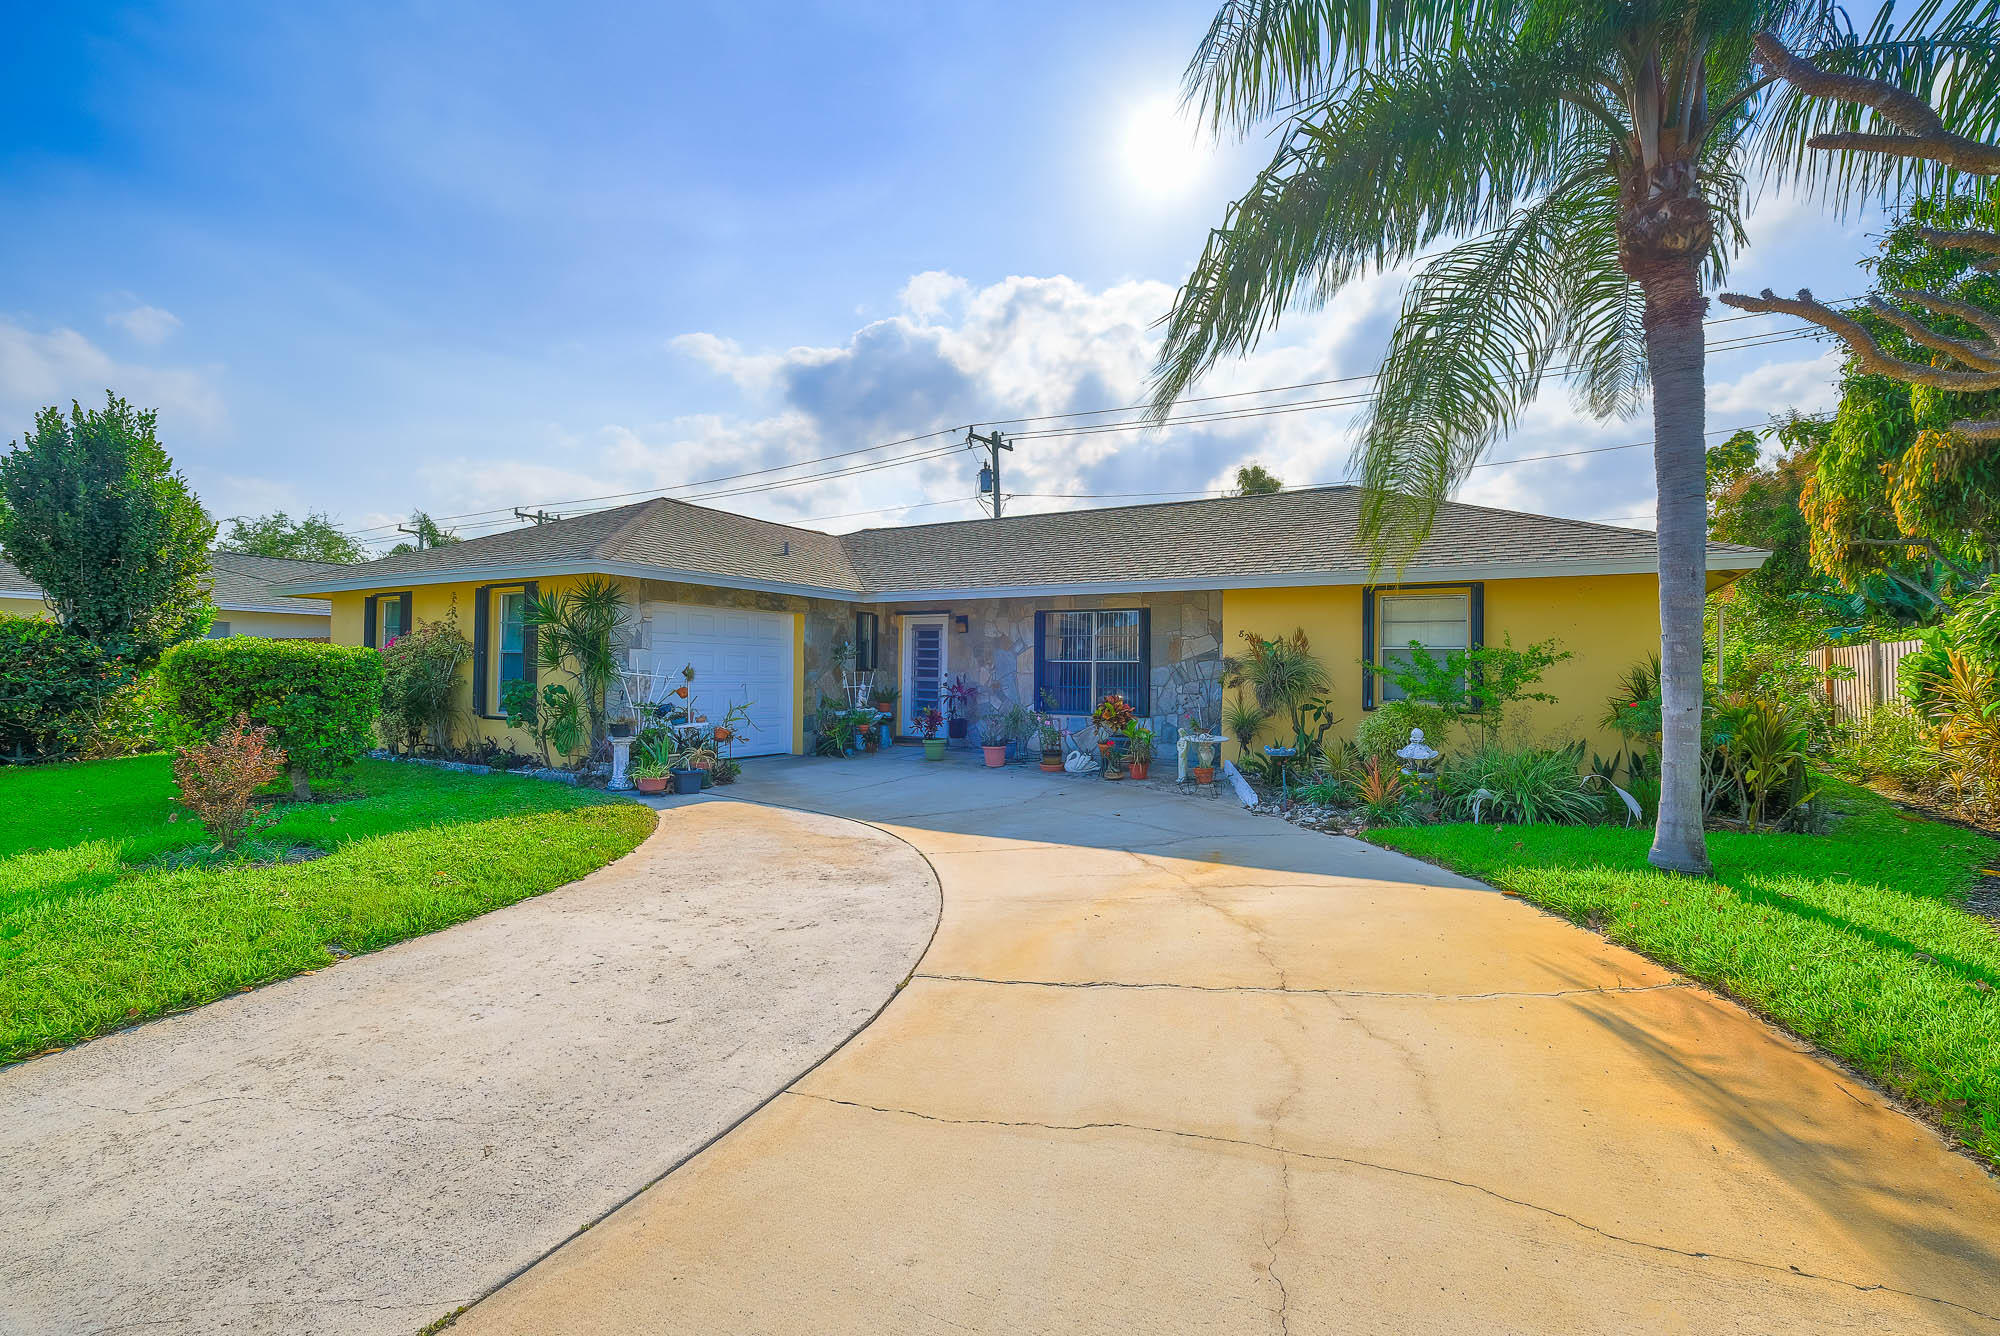 827 La Costa Way, Lantana, FL 33462